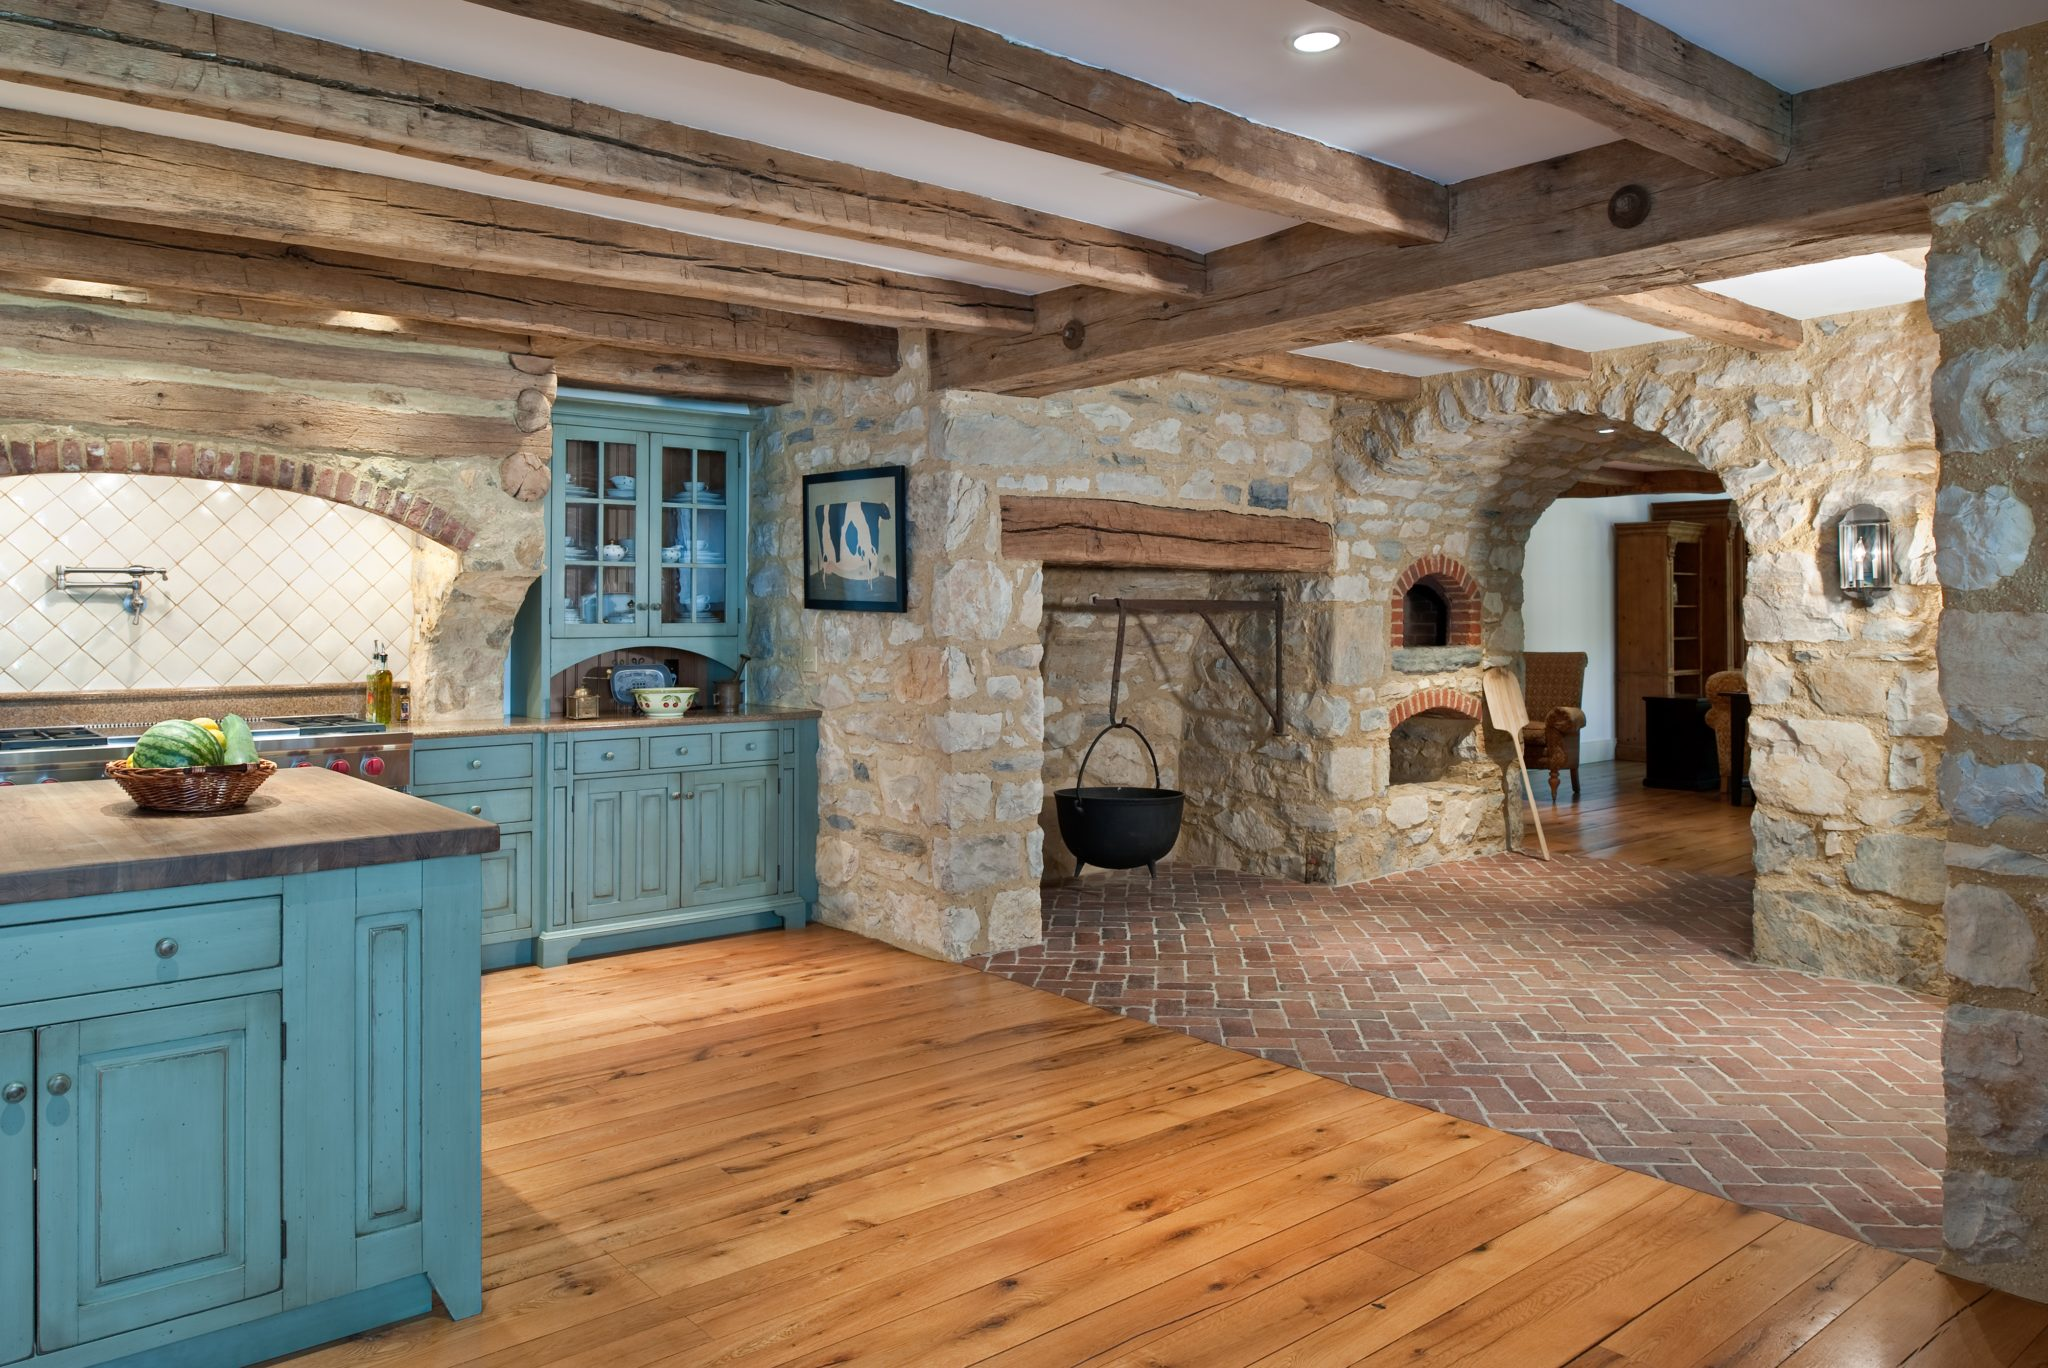 Rustic Farmhouse Kitchen with Walk-in Fireplace in Malvern, Pennsylvania, by Period Architecture